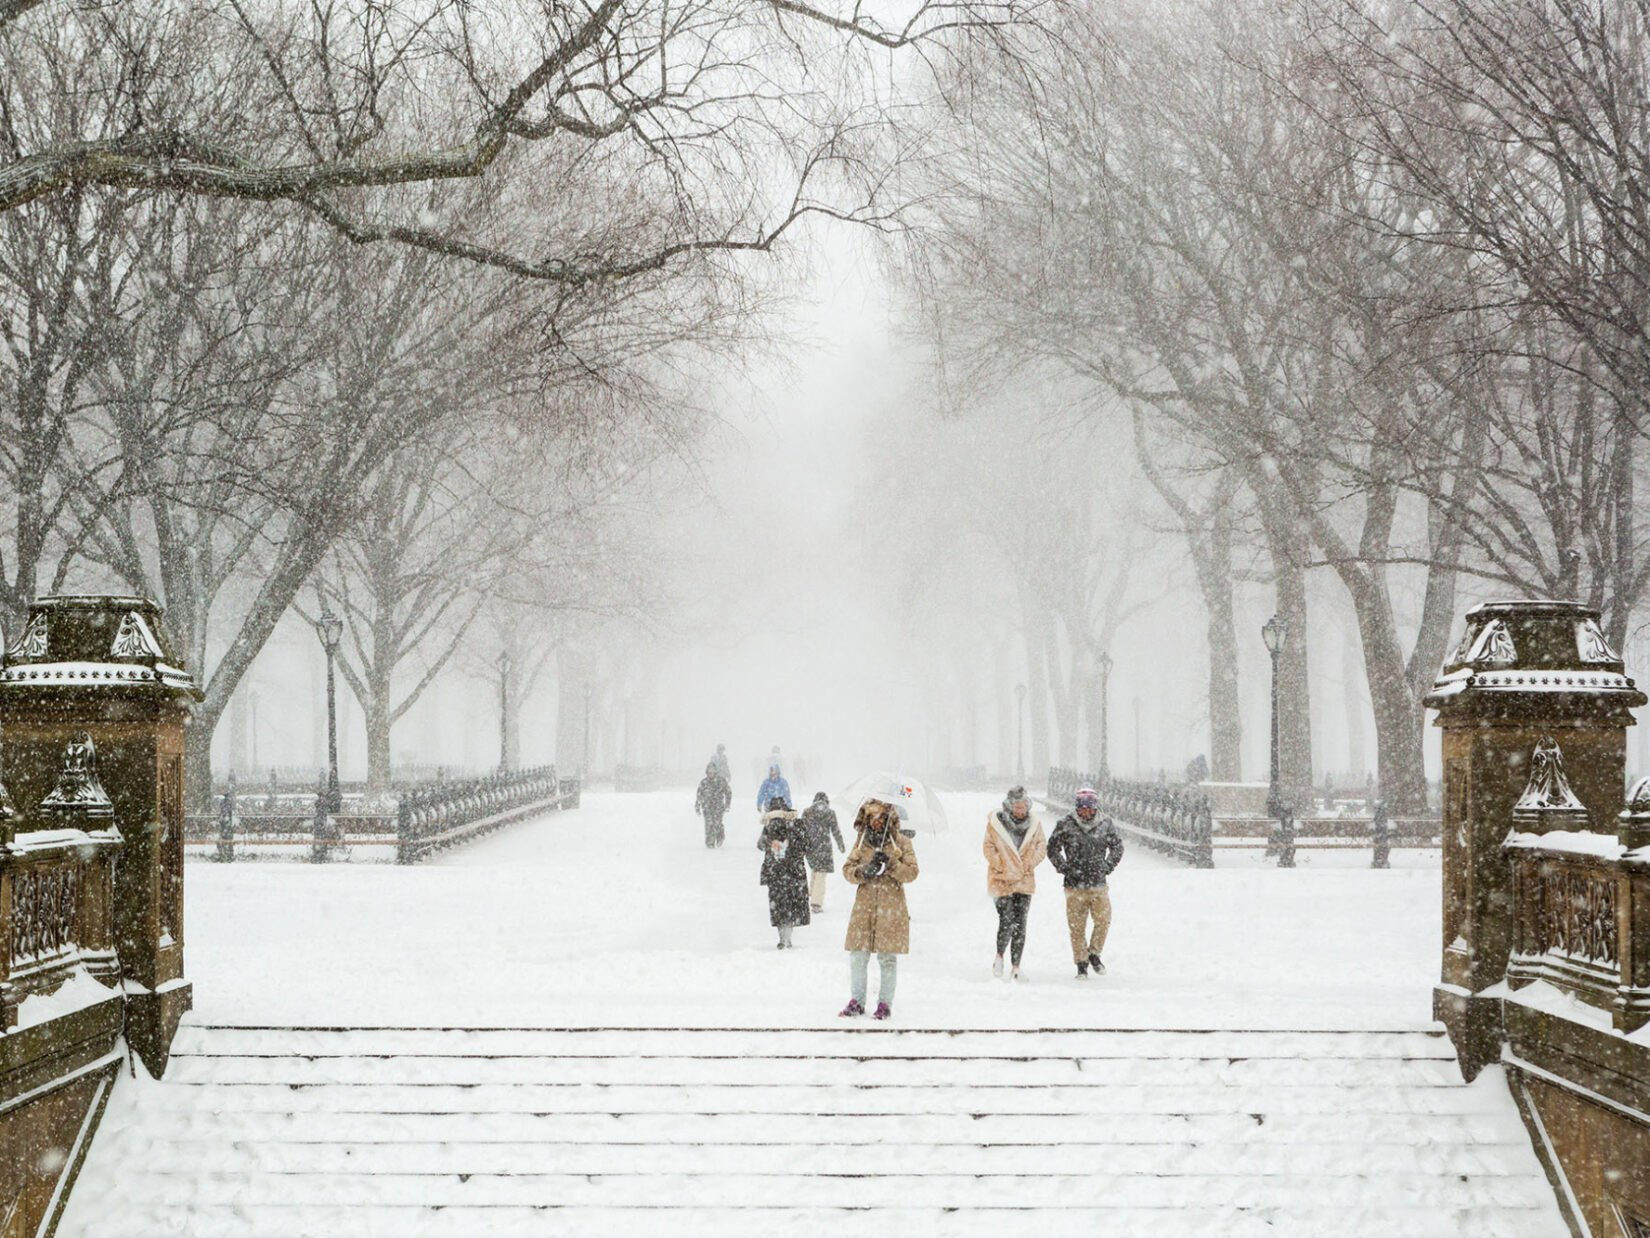 A view looking down the Mall from the steps of Bethesda Terrace on a snowy winter day